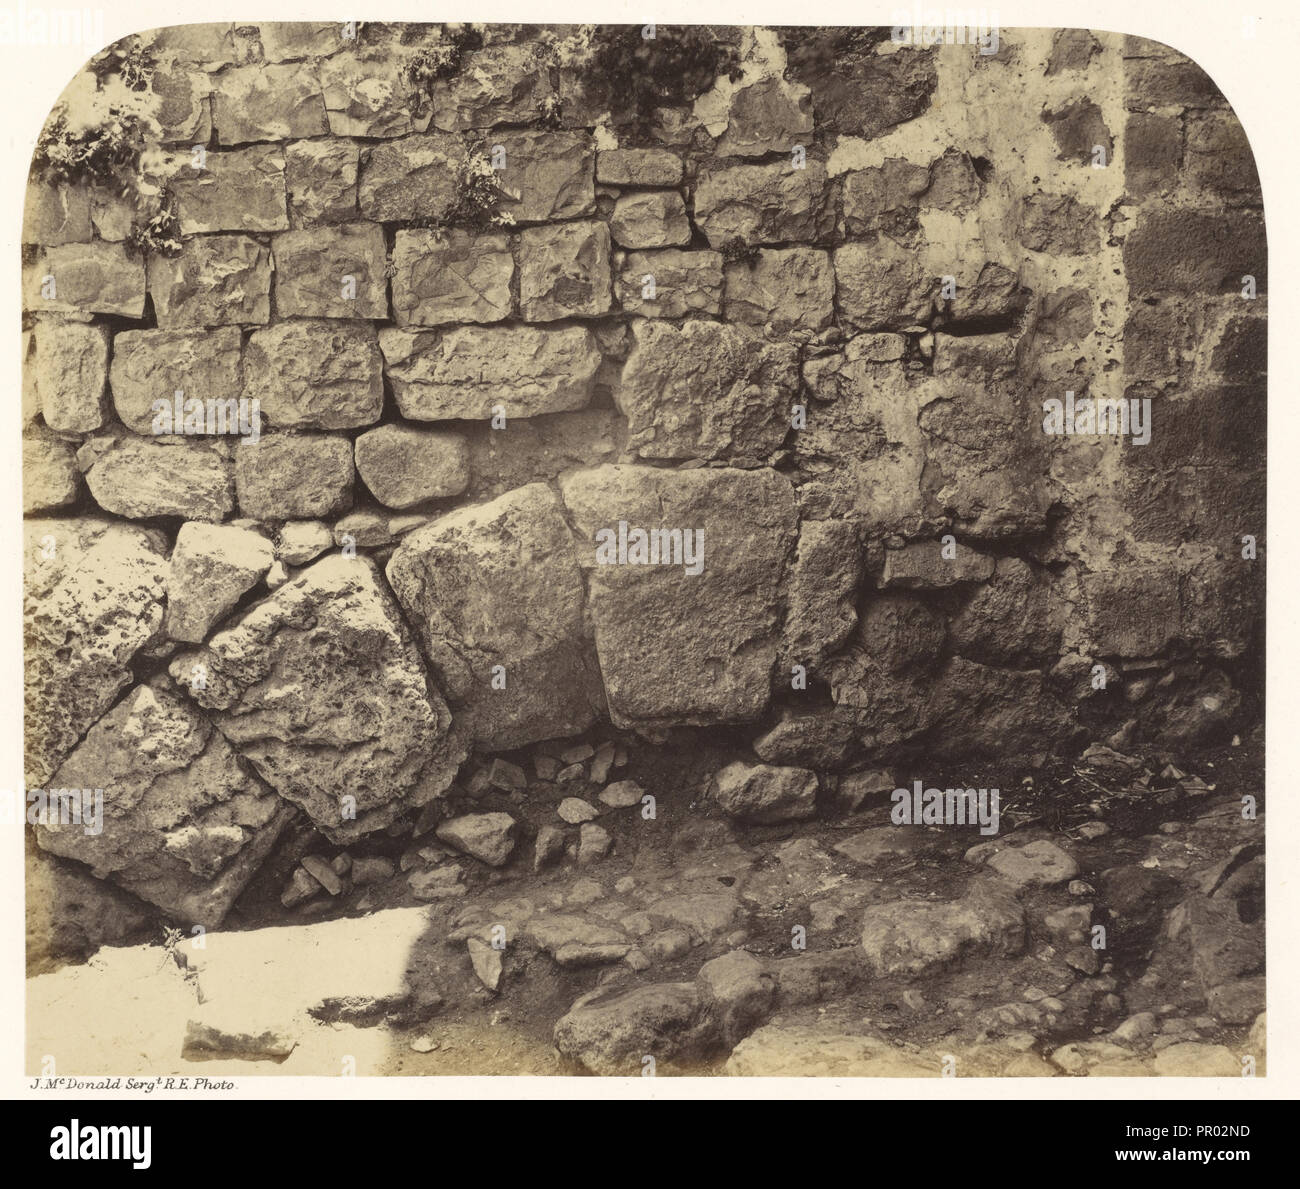 Portion of an Old Arch at the S.W. End of the Bazaars; Sgt. James M. McDonald, English, 1822 - 1885, Israel; 1865; Albumen - Stock Image